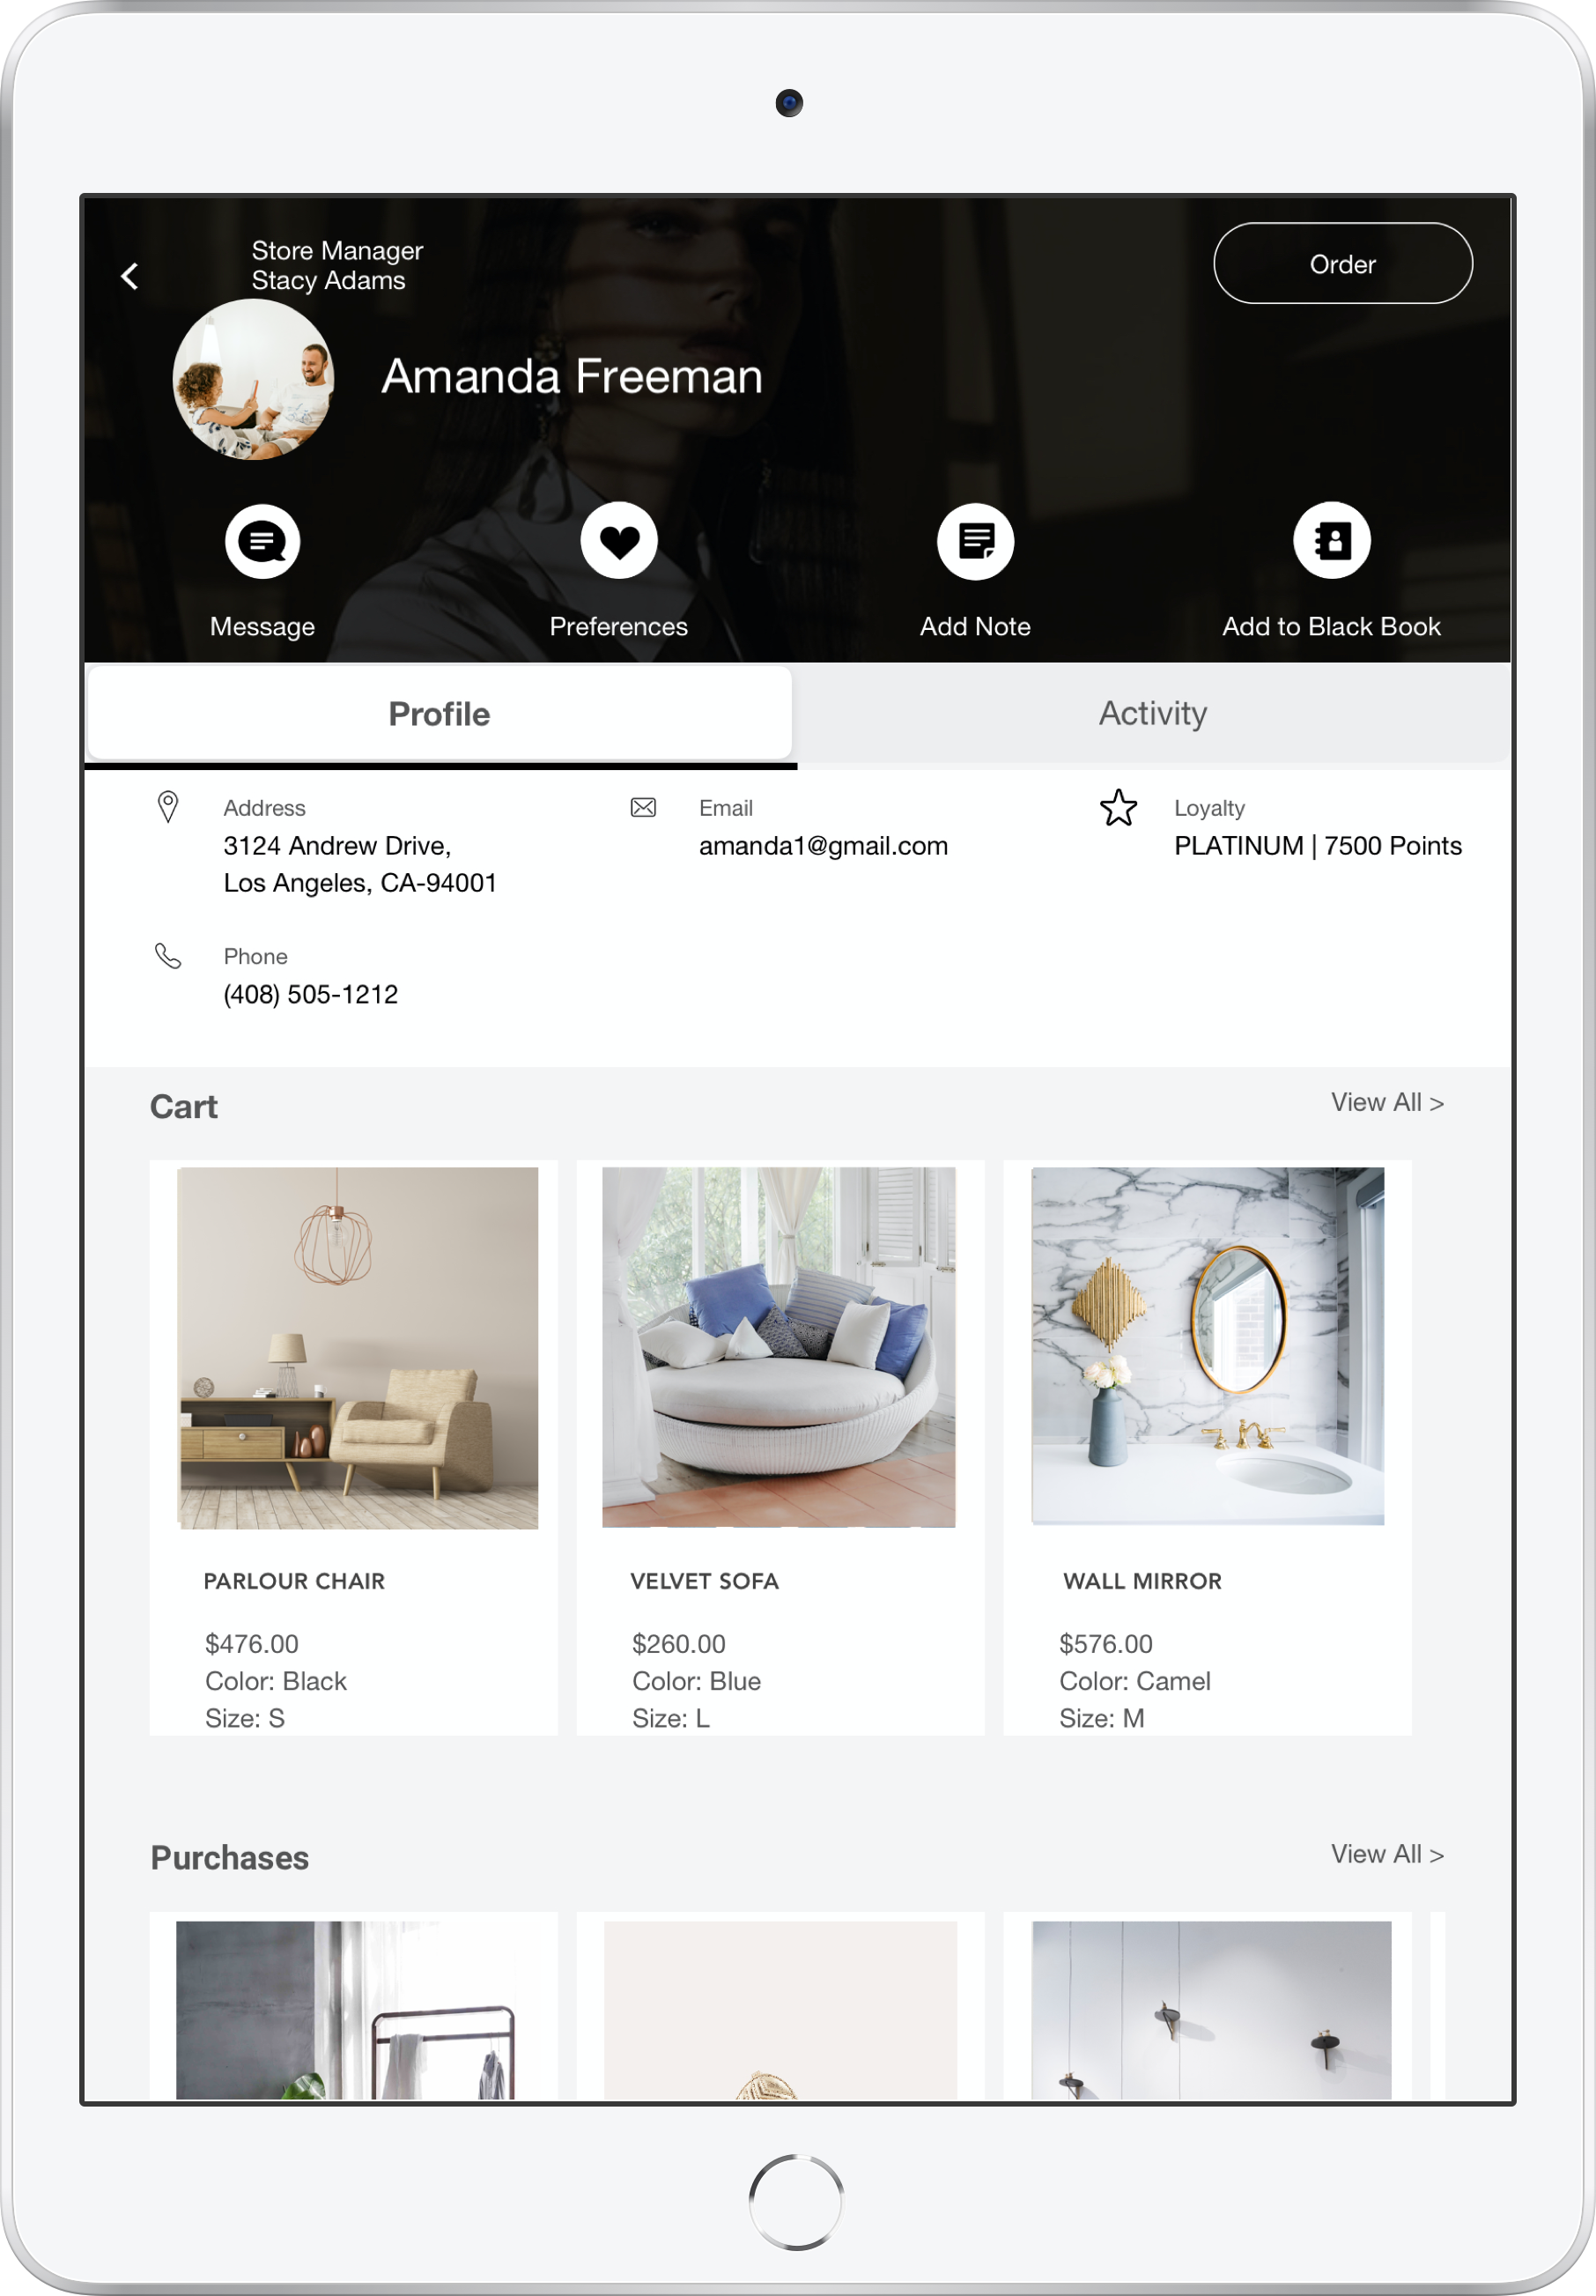 Home Furnishing software by PredictSpring